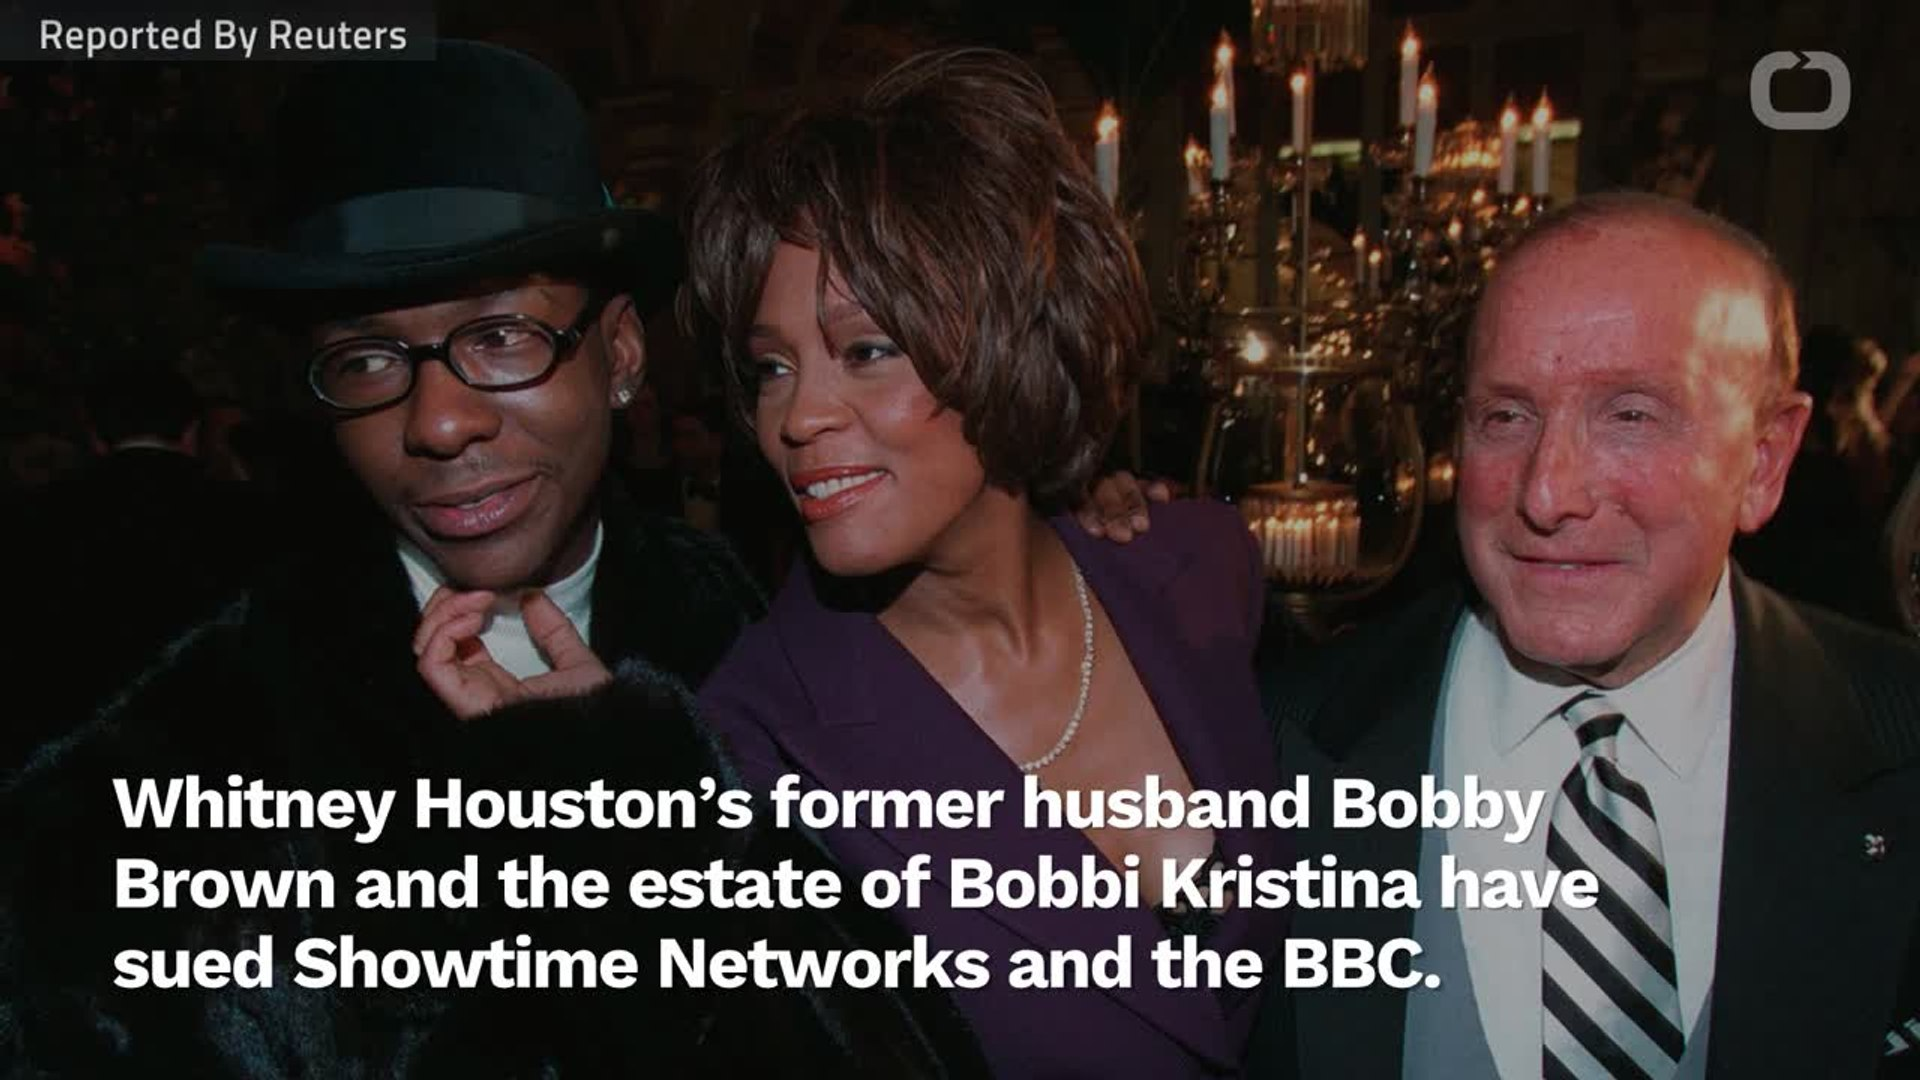 Bobby Brown Sues Showtime, BBC Over Whitney Houston Documentary